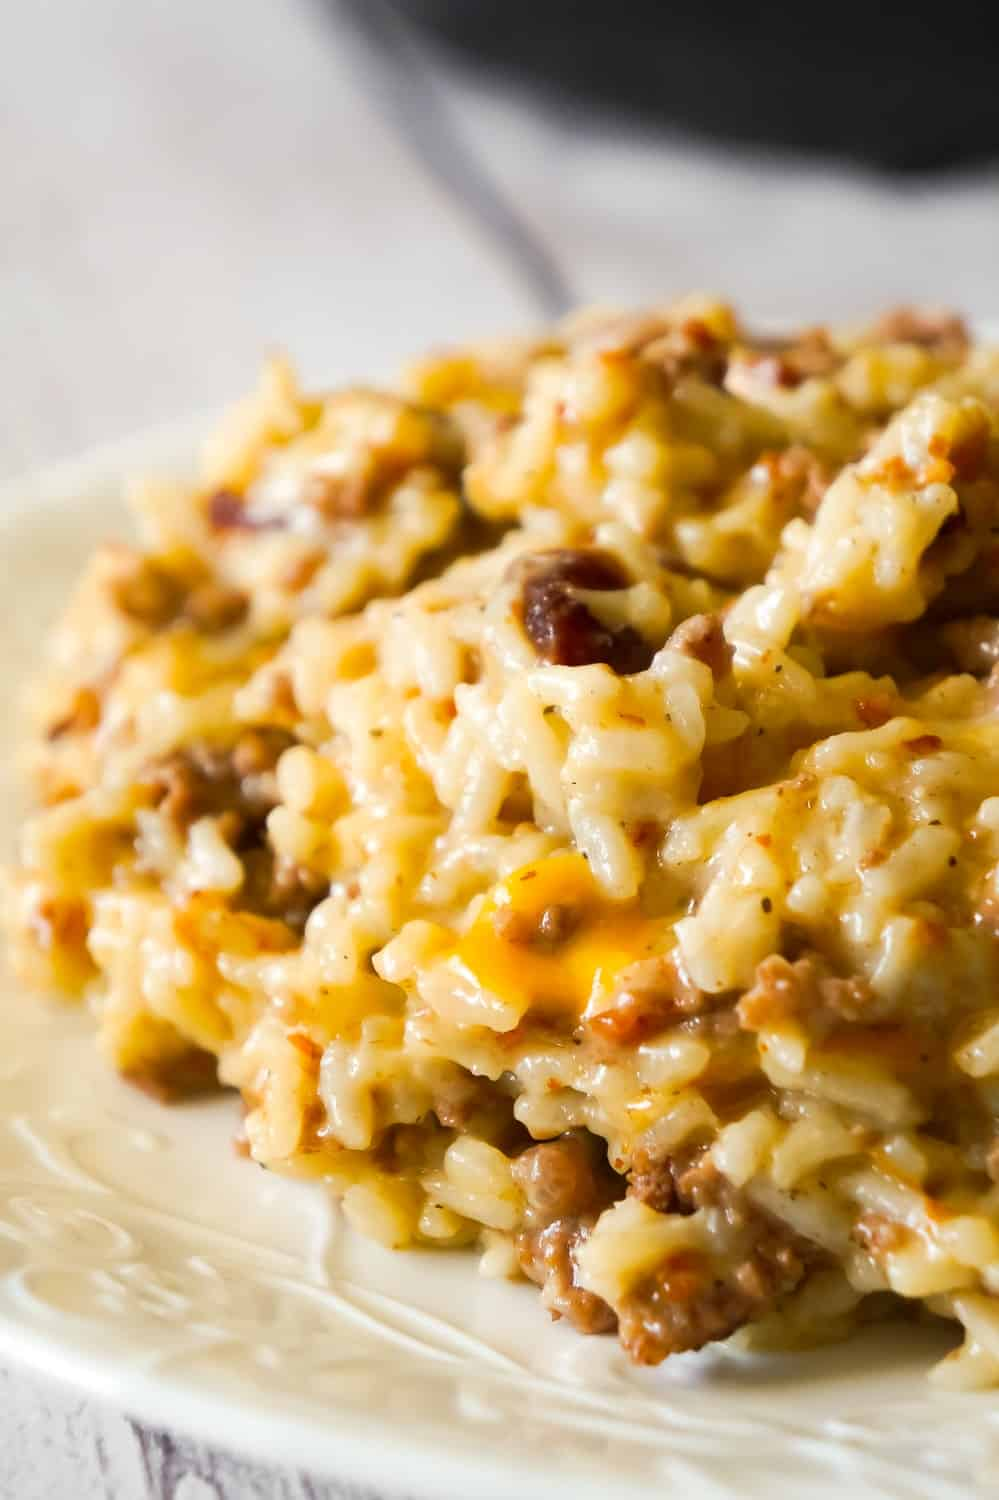 Instant Pot Bacon Cheeseburger Rice is a delicious pressure cooker dinner recipe using hamburger meat and loaded with long grain rice, crumbled bacon and cheese.